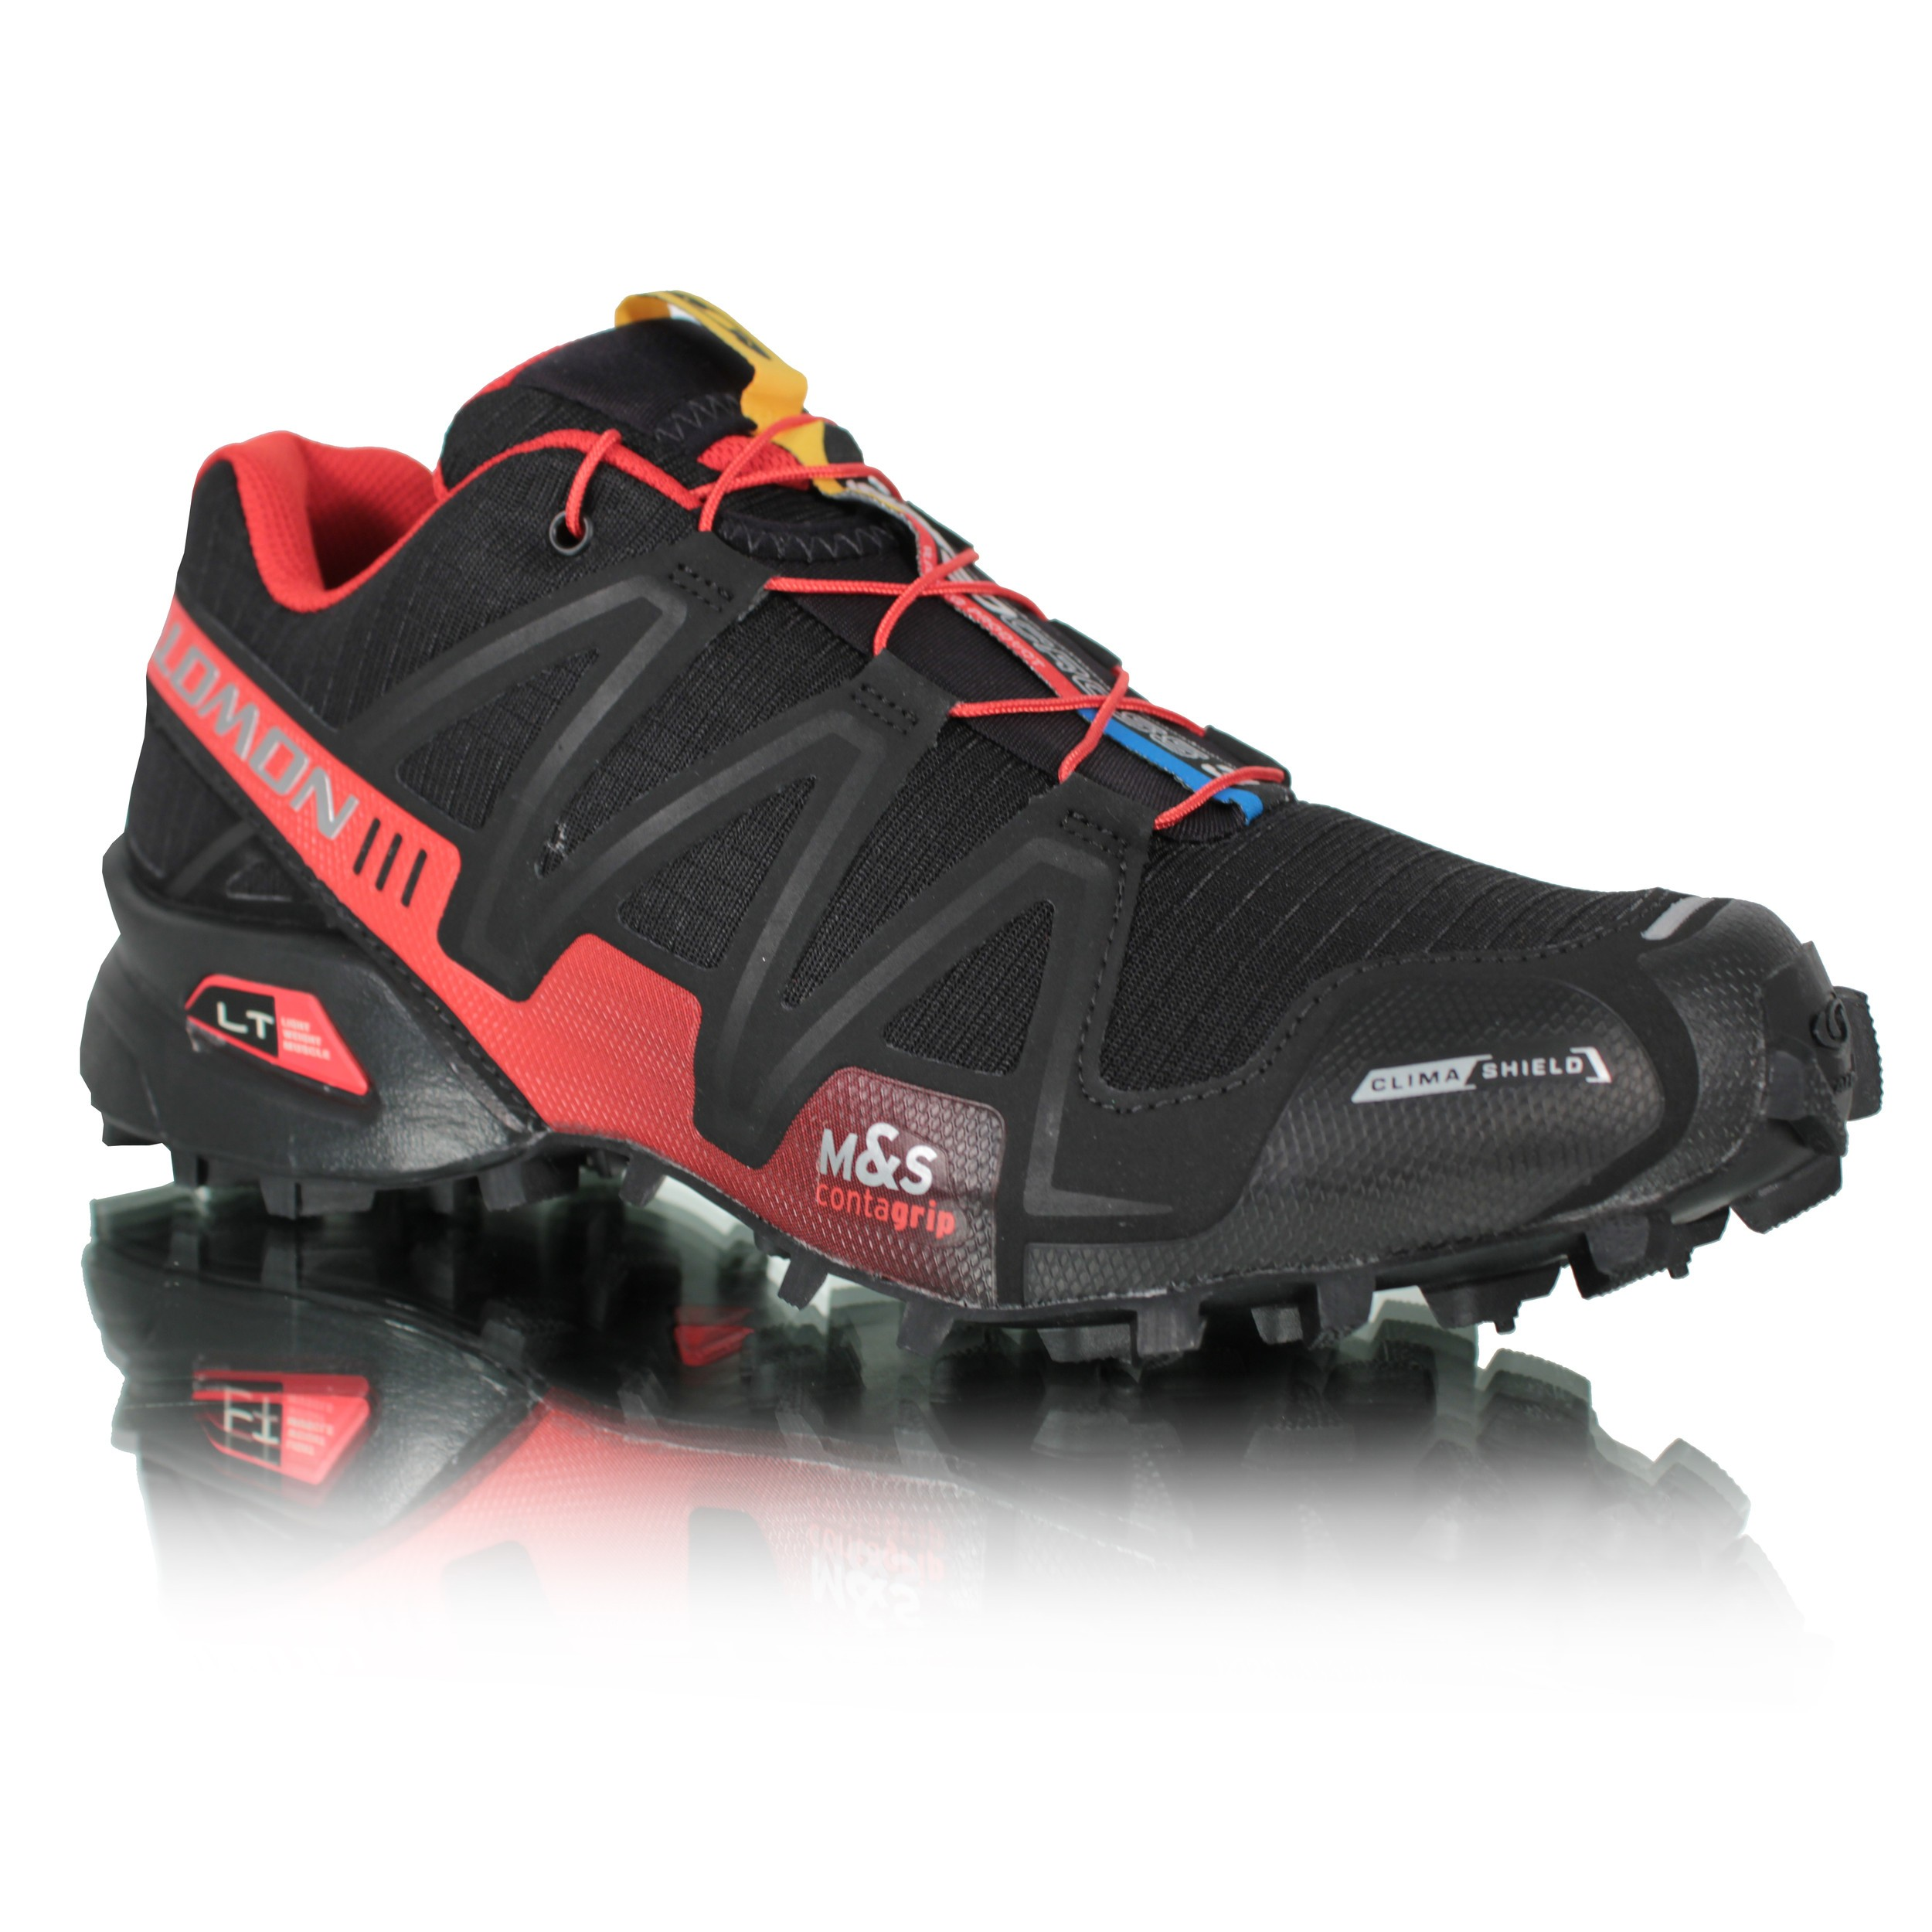 Salomon Speedcross 3 CS Trail Running Shoes